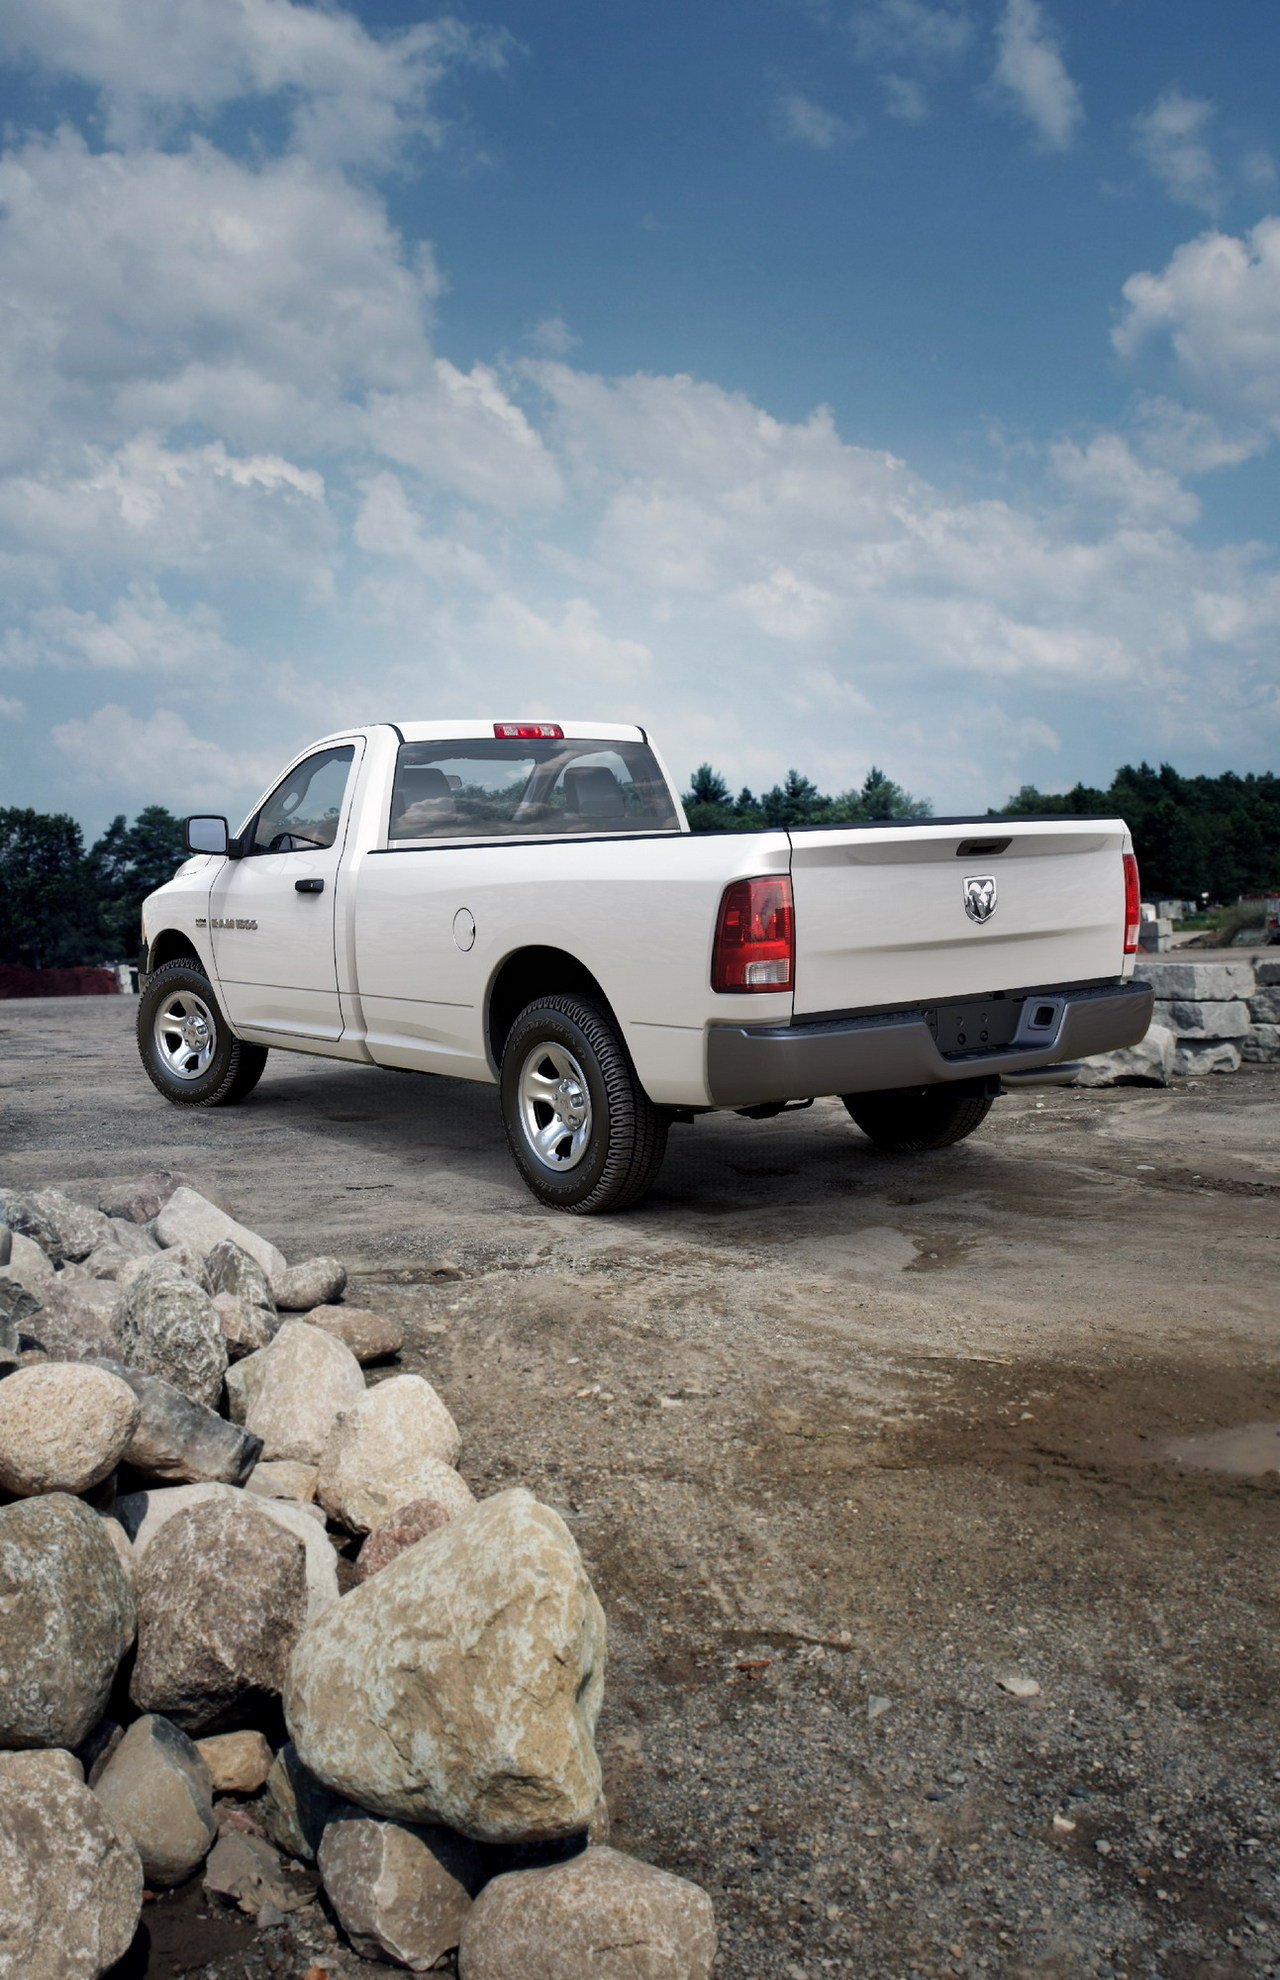 2011 dodge ram tradesman picture 392205 car review top speed. Black Bedroom Furniture Sets. Home Design Ideas